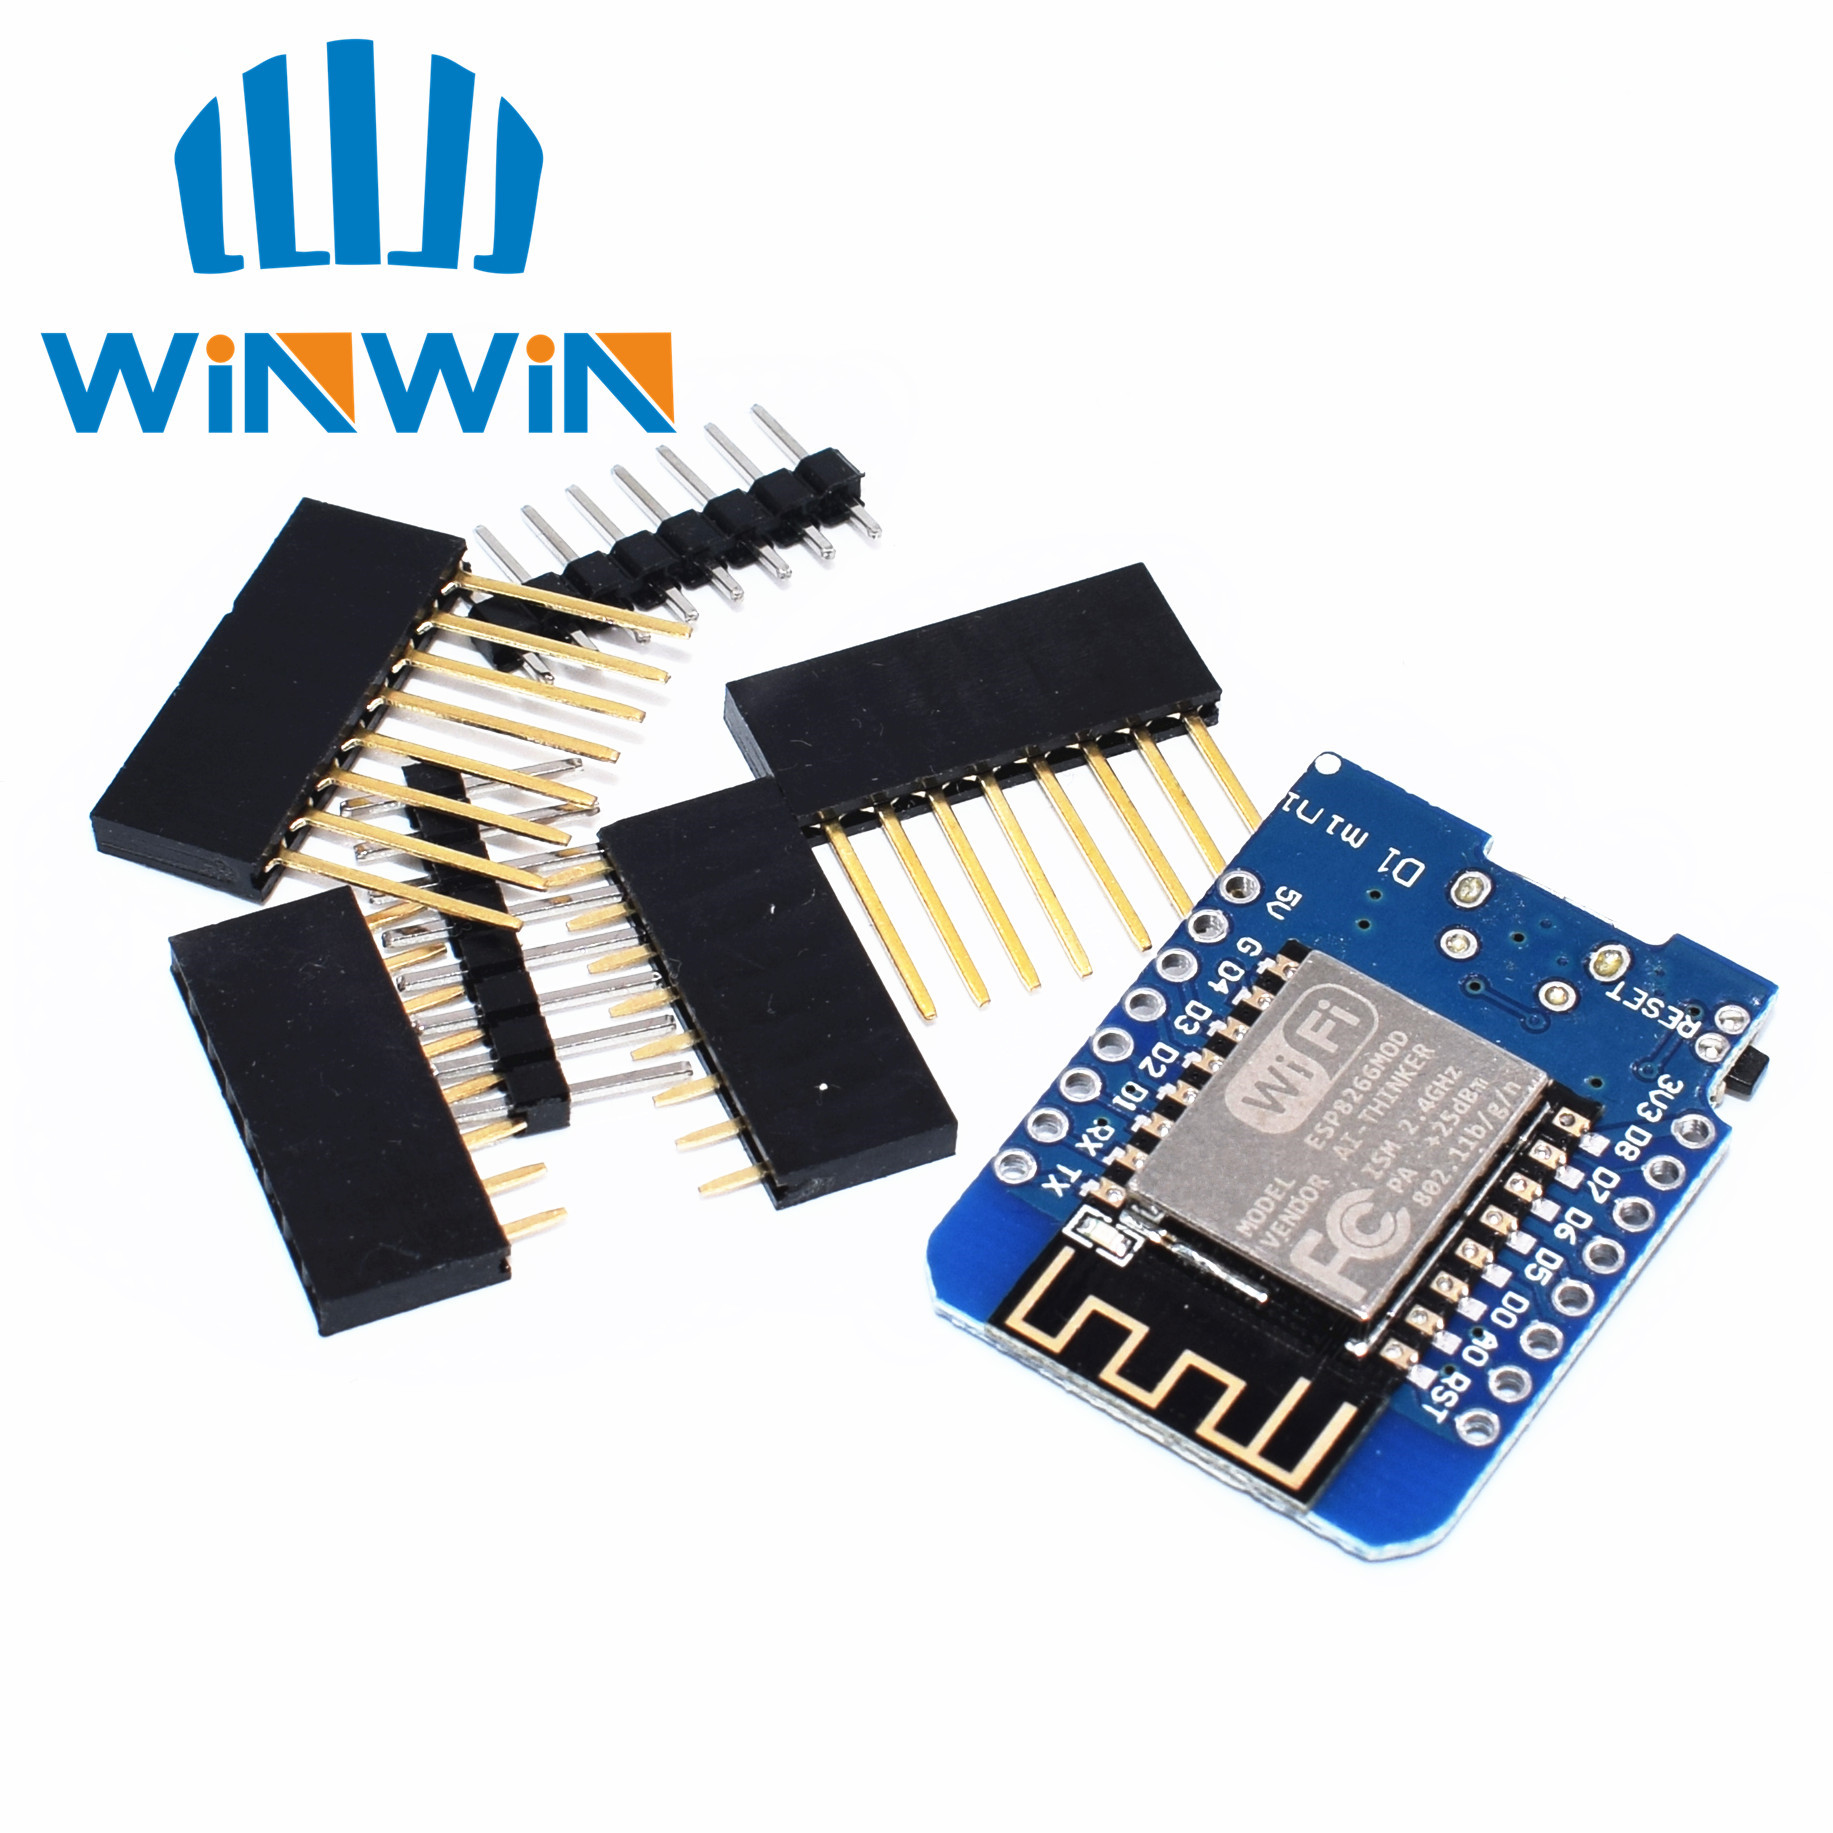 5pcs ESP8266 ESP-12 ESP-12F CH340G CH340 V2 USB WeMos D1 Mini WIFI Development Board D1 Mini NodeMCU Lua IOT Board 3.3V